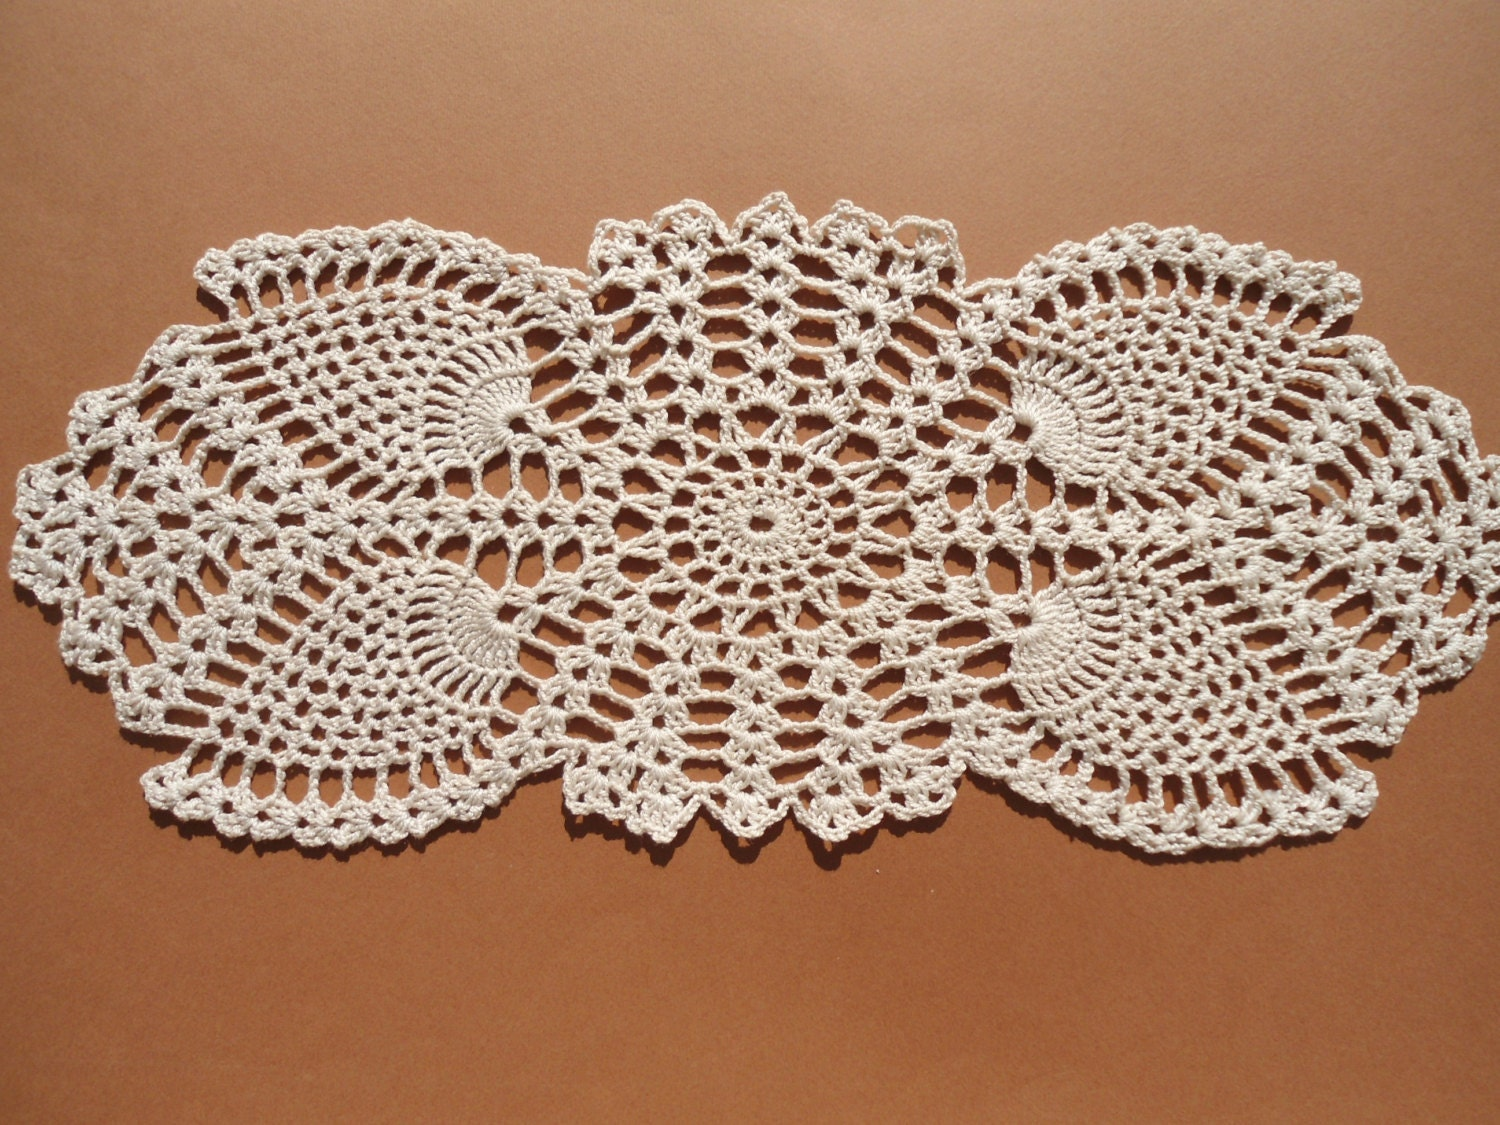 oval crochet doily new hand crocheted doilies ecru doily. Black Bedroom Furniture Sets. Home Design Ideas